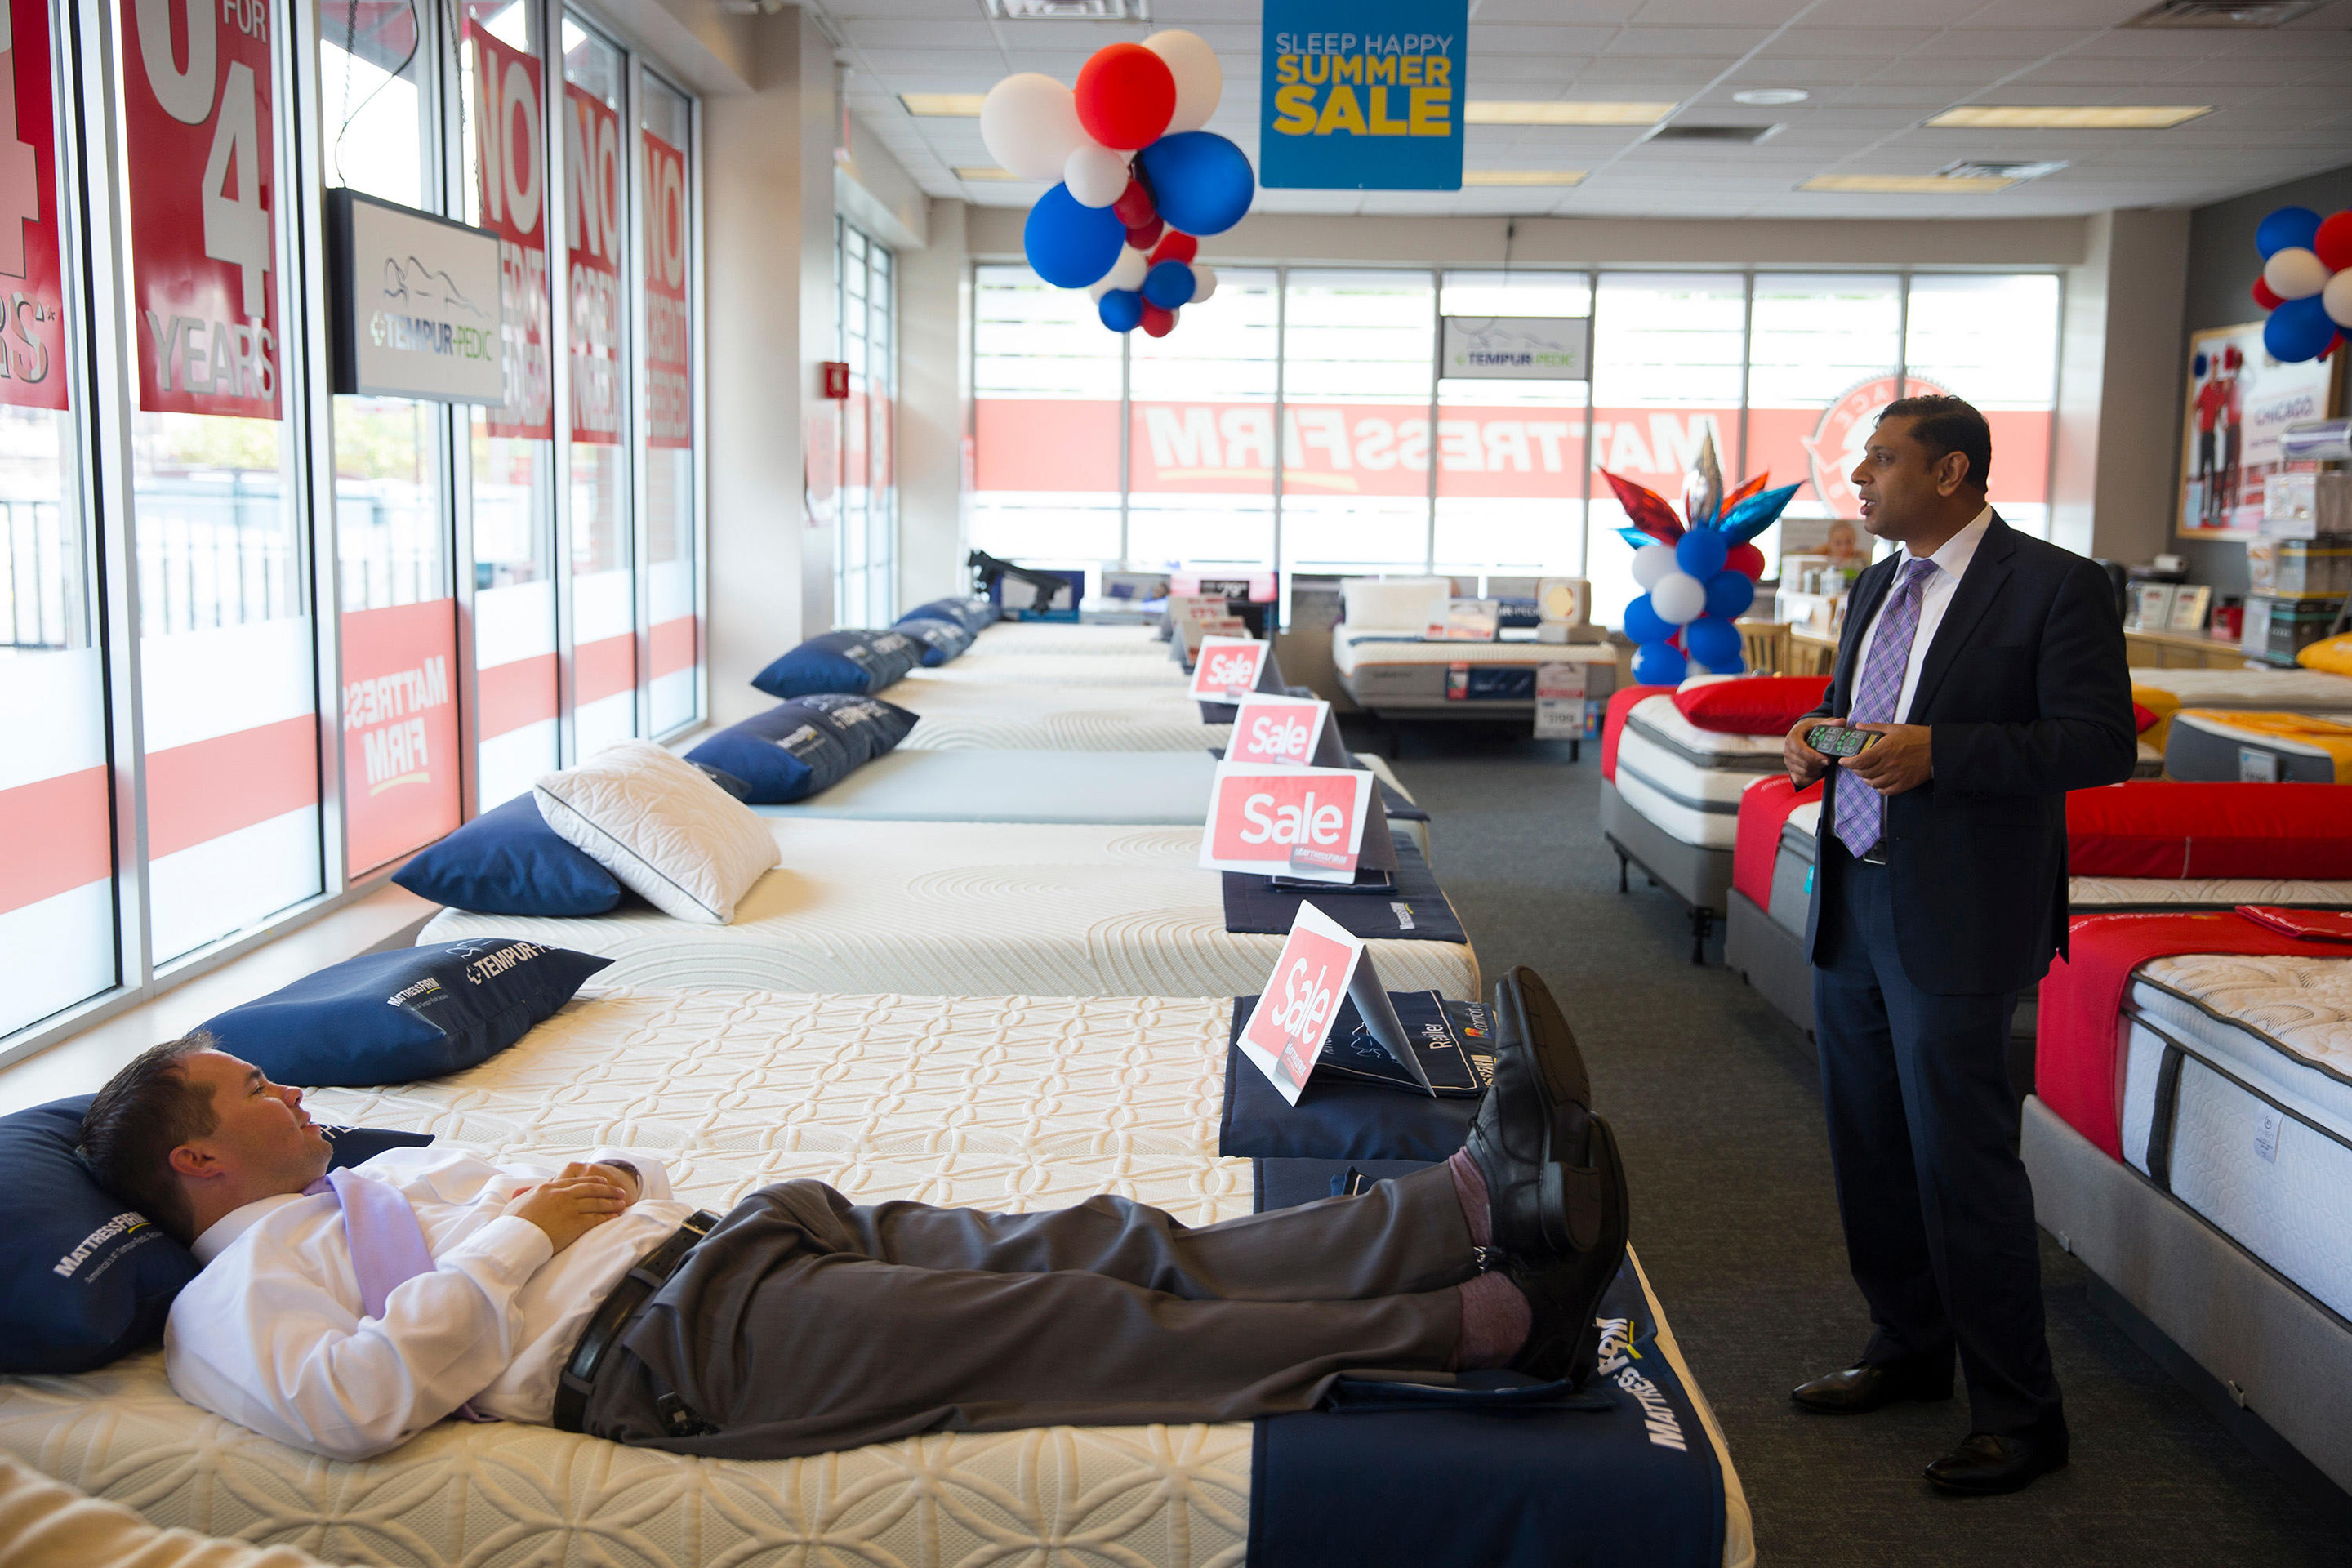 Chicago, USA. 14th July, 2016. the South Loop store location. 14th July, 2016. Joe Kelly, left, district manager of Mattress Firm, runs through some training exercises with Bobby Mathew, store manager at the South Loop store location, on Thursday, July 14